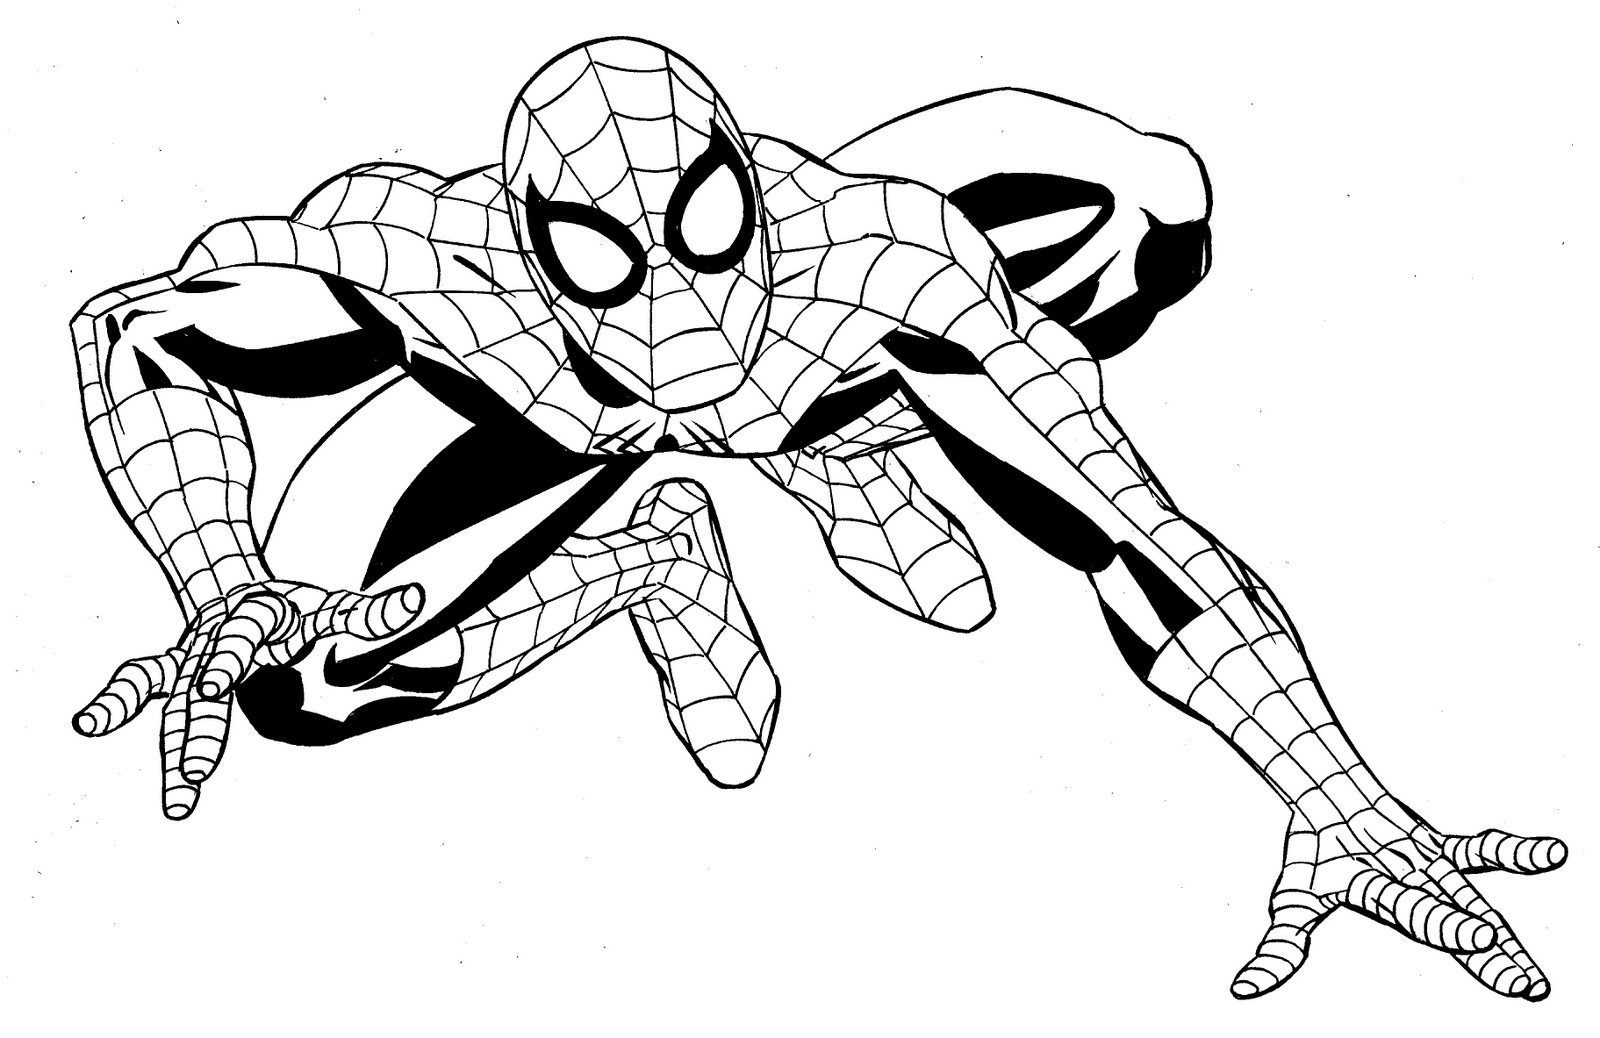 super heroes colouring pictures scott koblish more disney marvel super heroes magazine super pictures colouring heroes